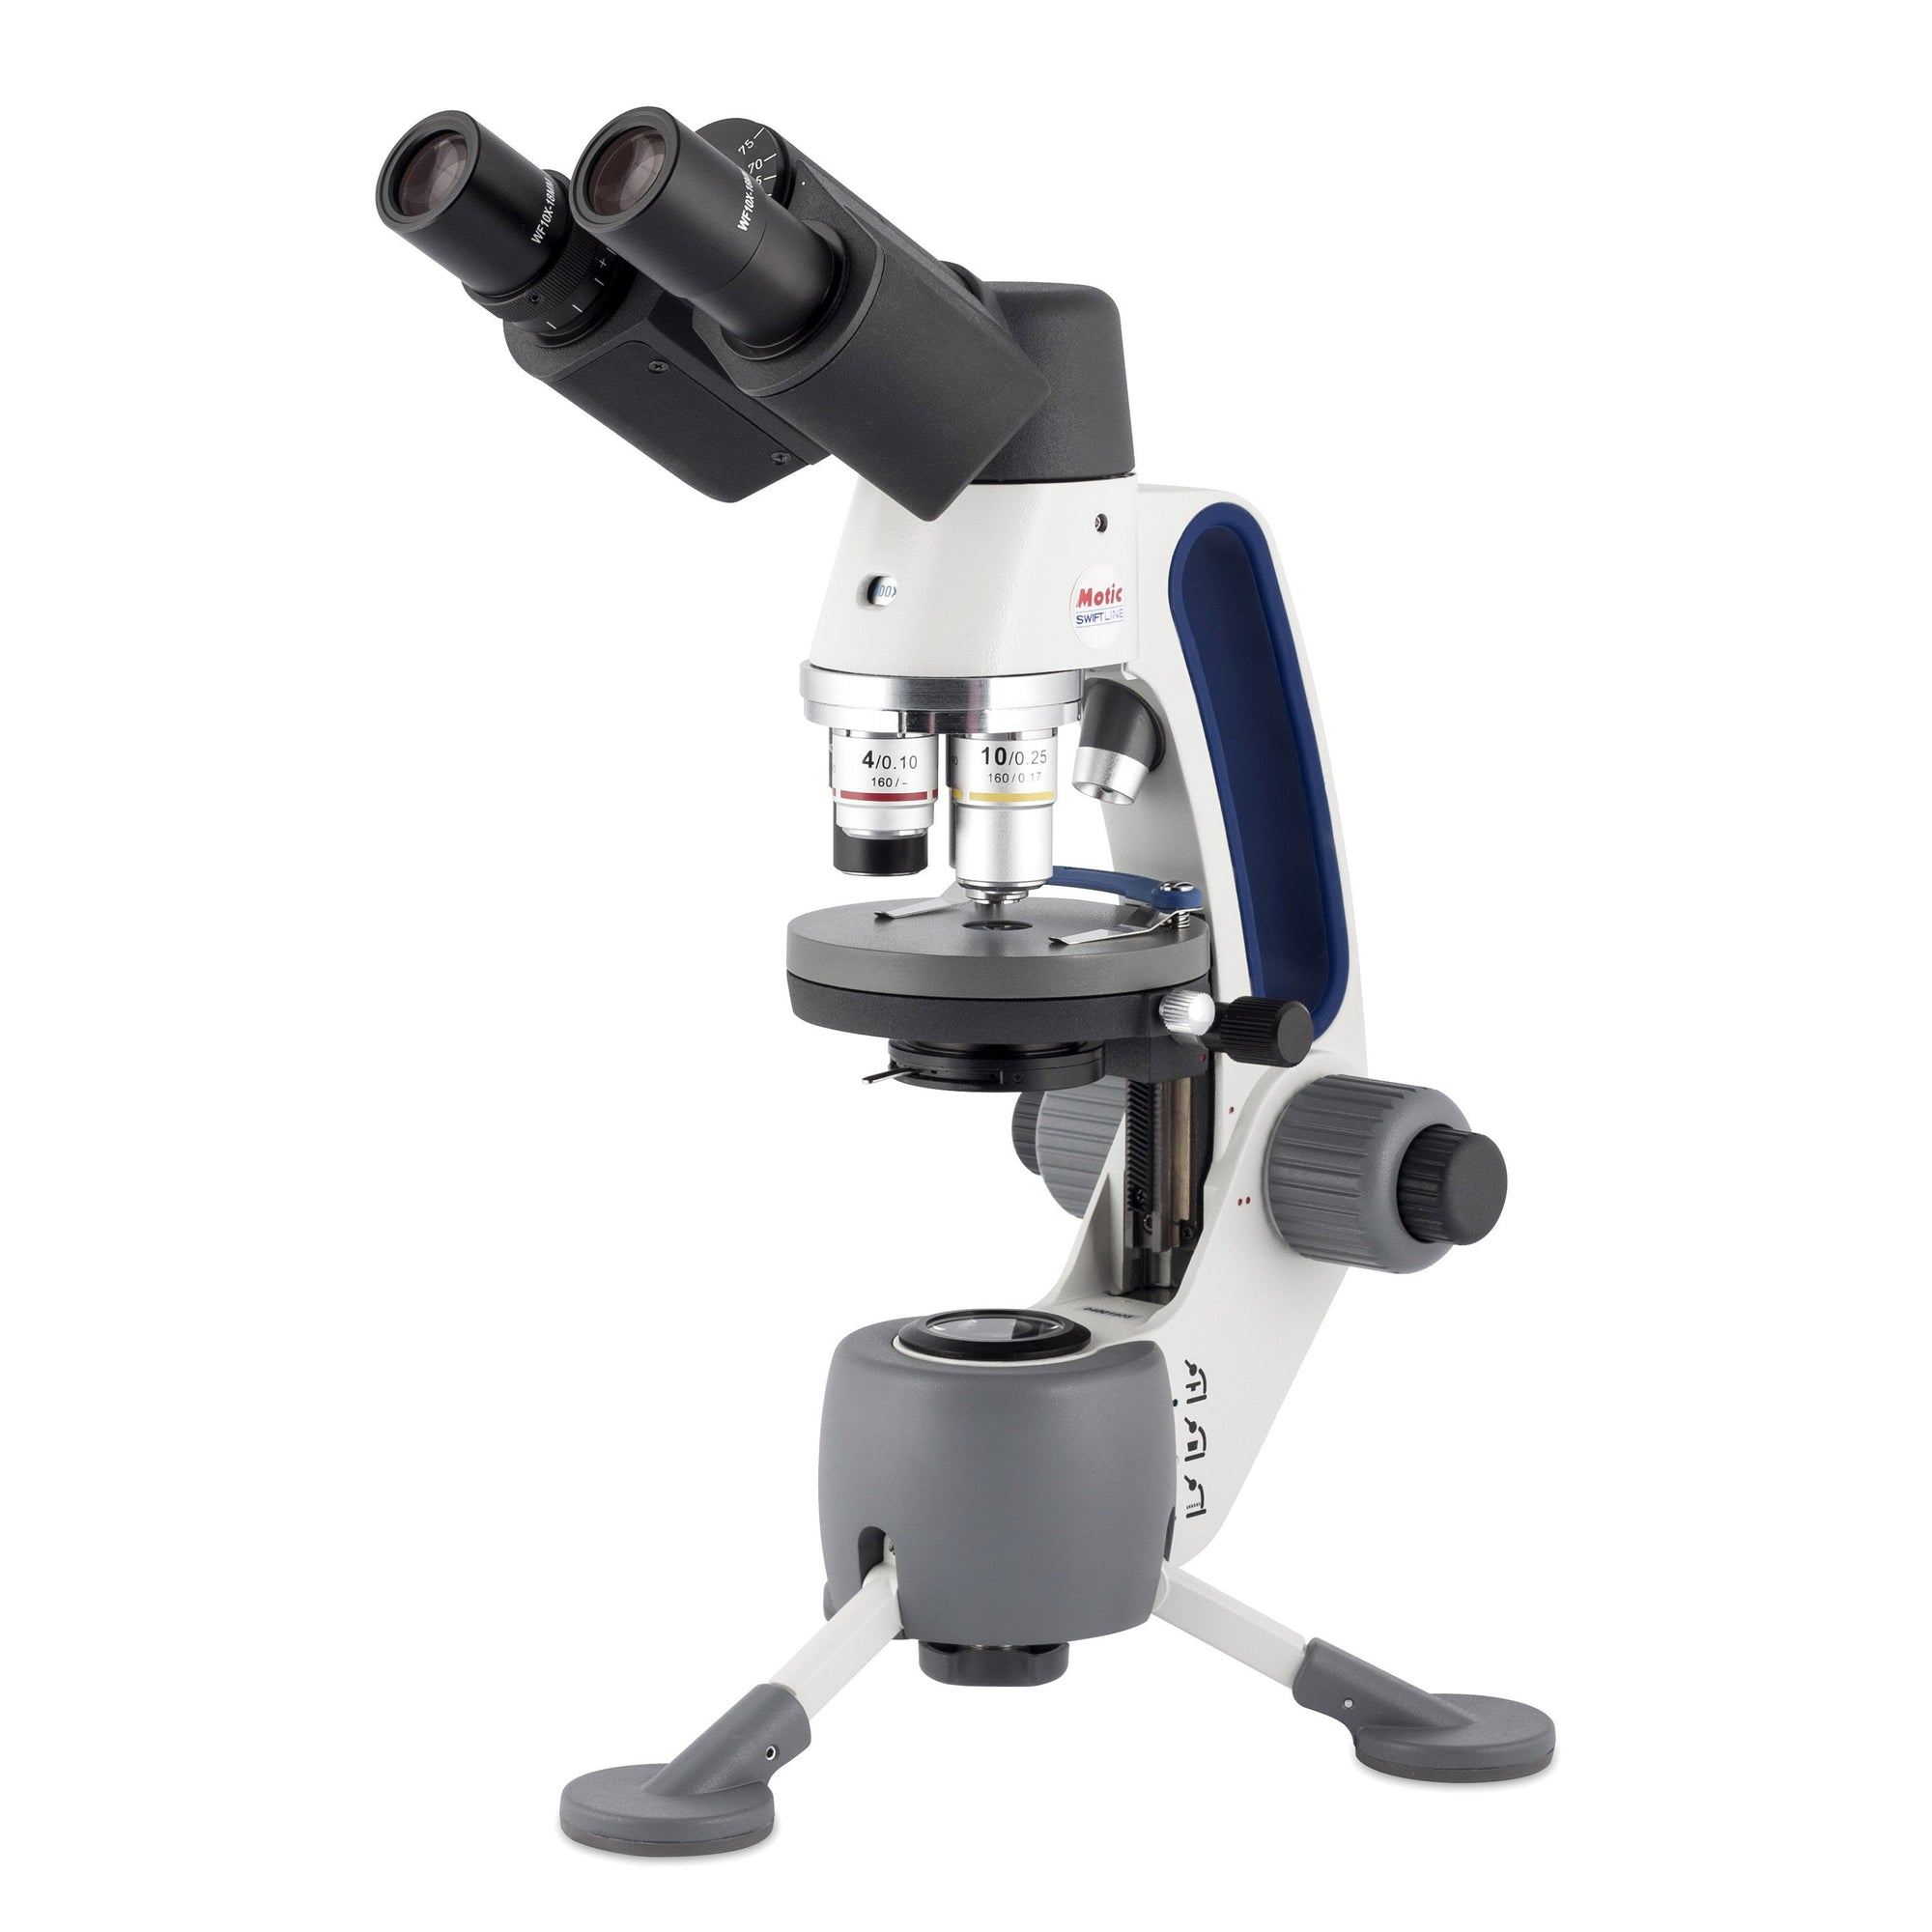 Motic SwiftLine Swift3H-B 1X-40X Binocular Microscope